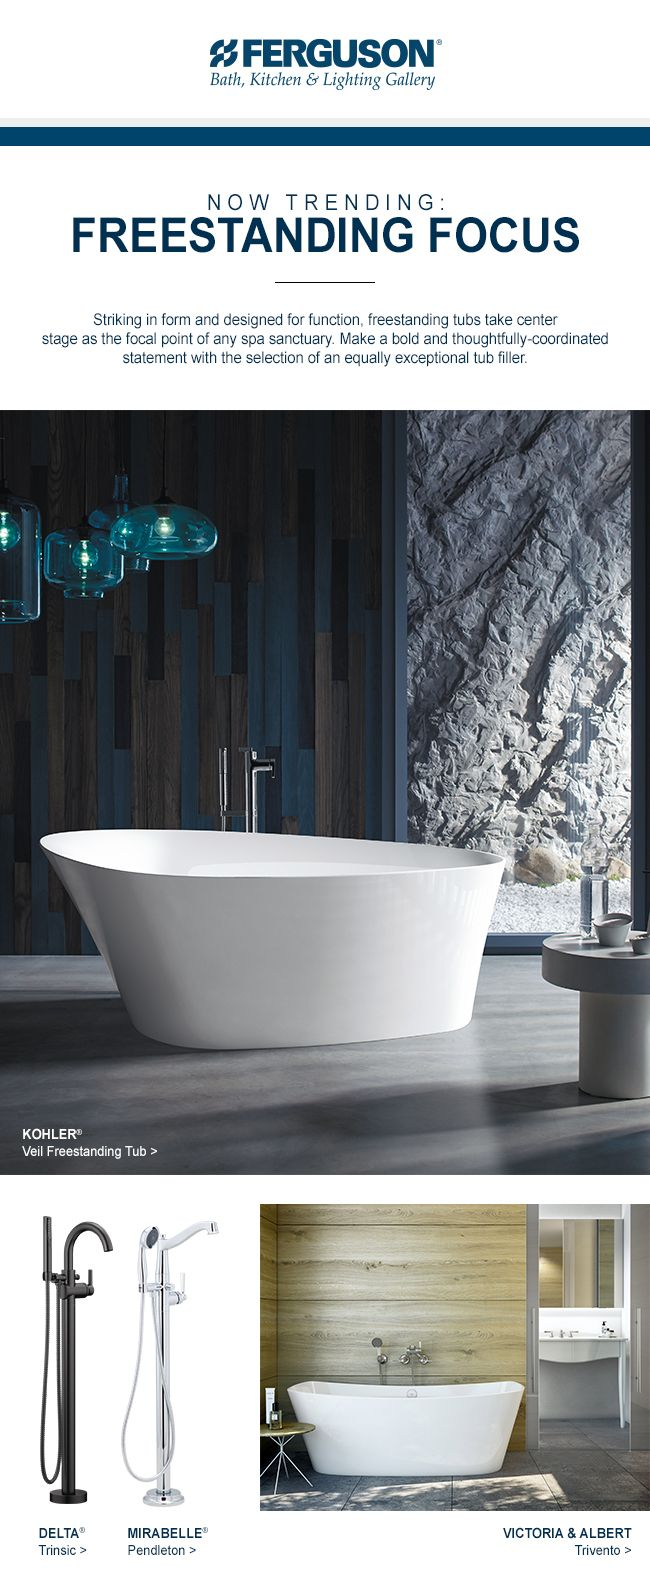 Striking In Form And Designed For Function, Modern Freestanding Tubs Take  Center Stage As The